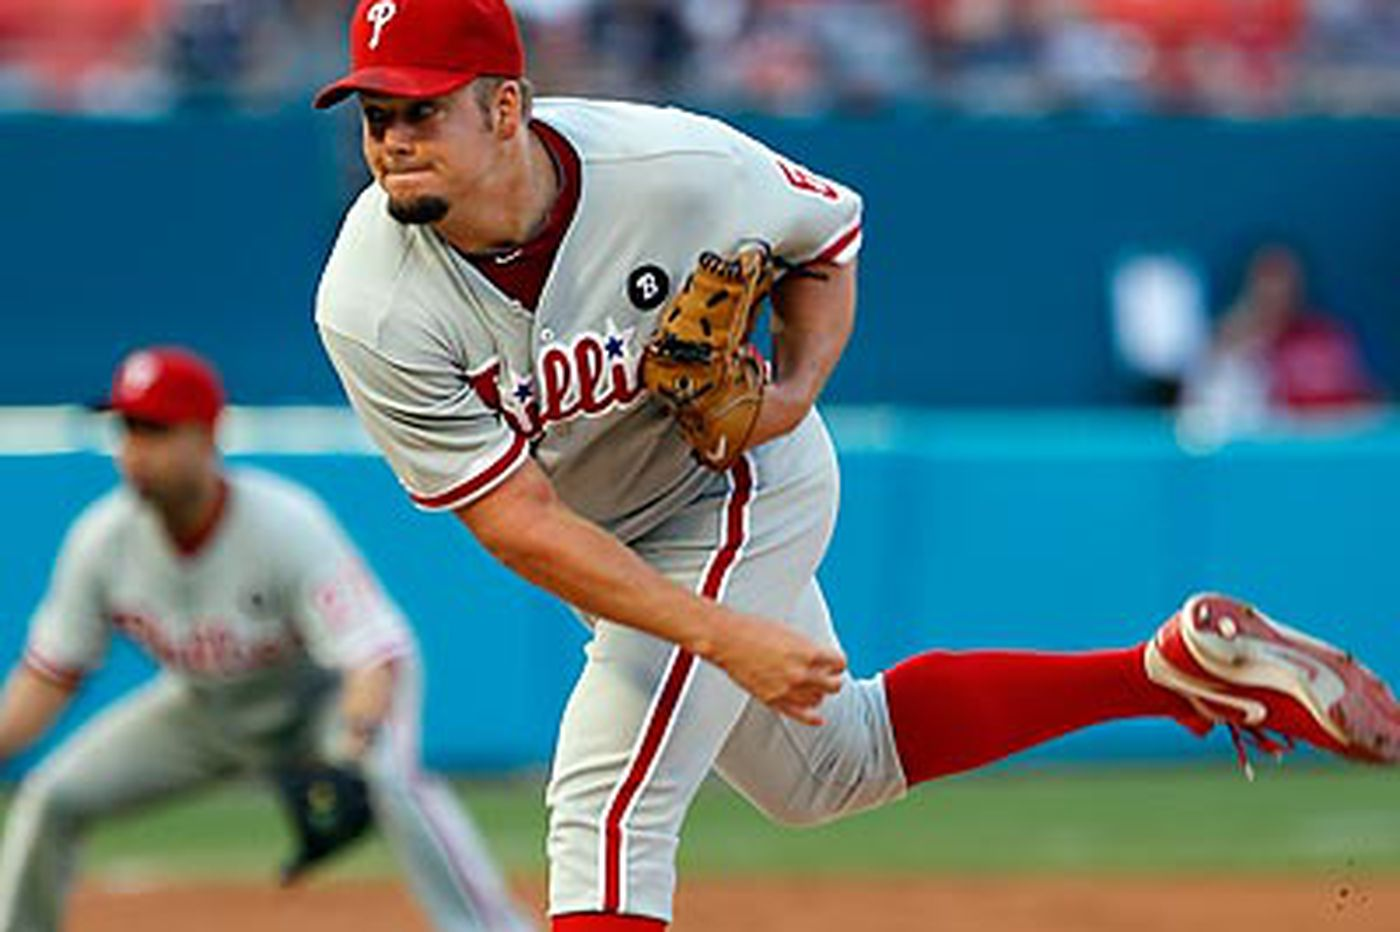 Phillies Notes: Phillies' Manuel: Blanton was sore after Monday's start